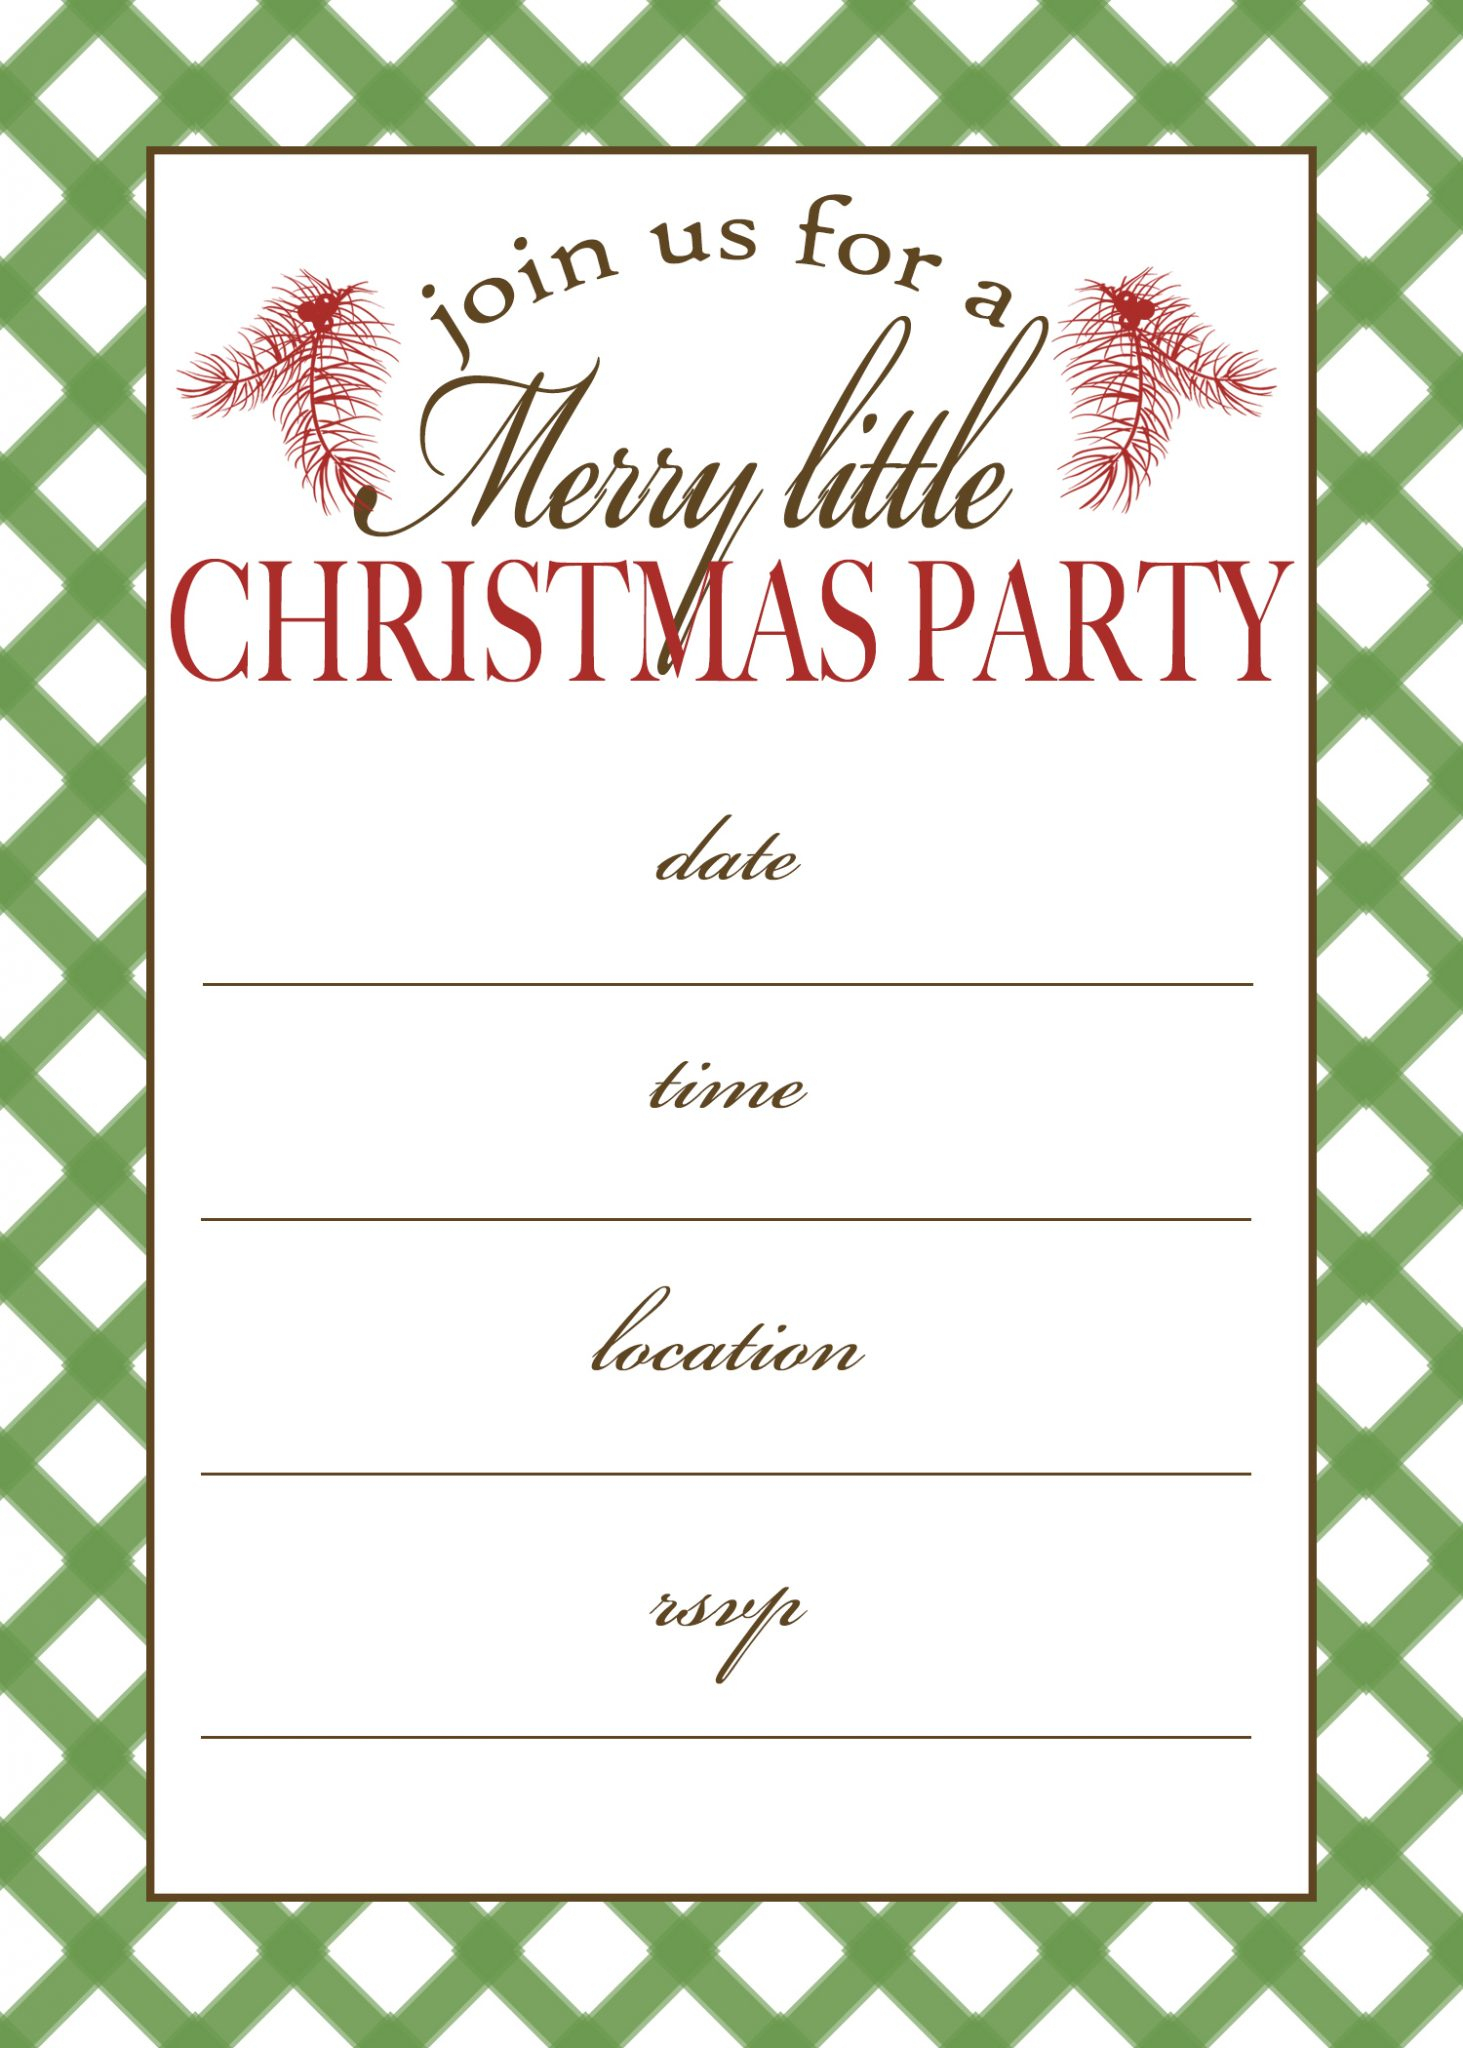 Free Printable Christmas Party Invitation | Moritz Fine Designs - Free Printable Christmas Invitations